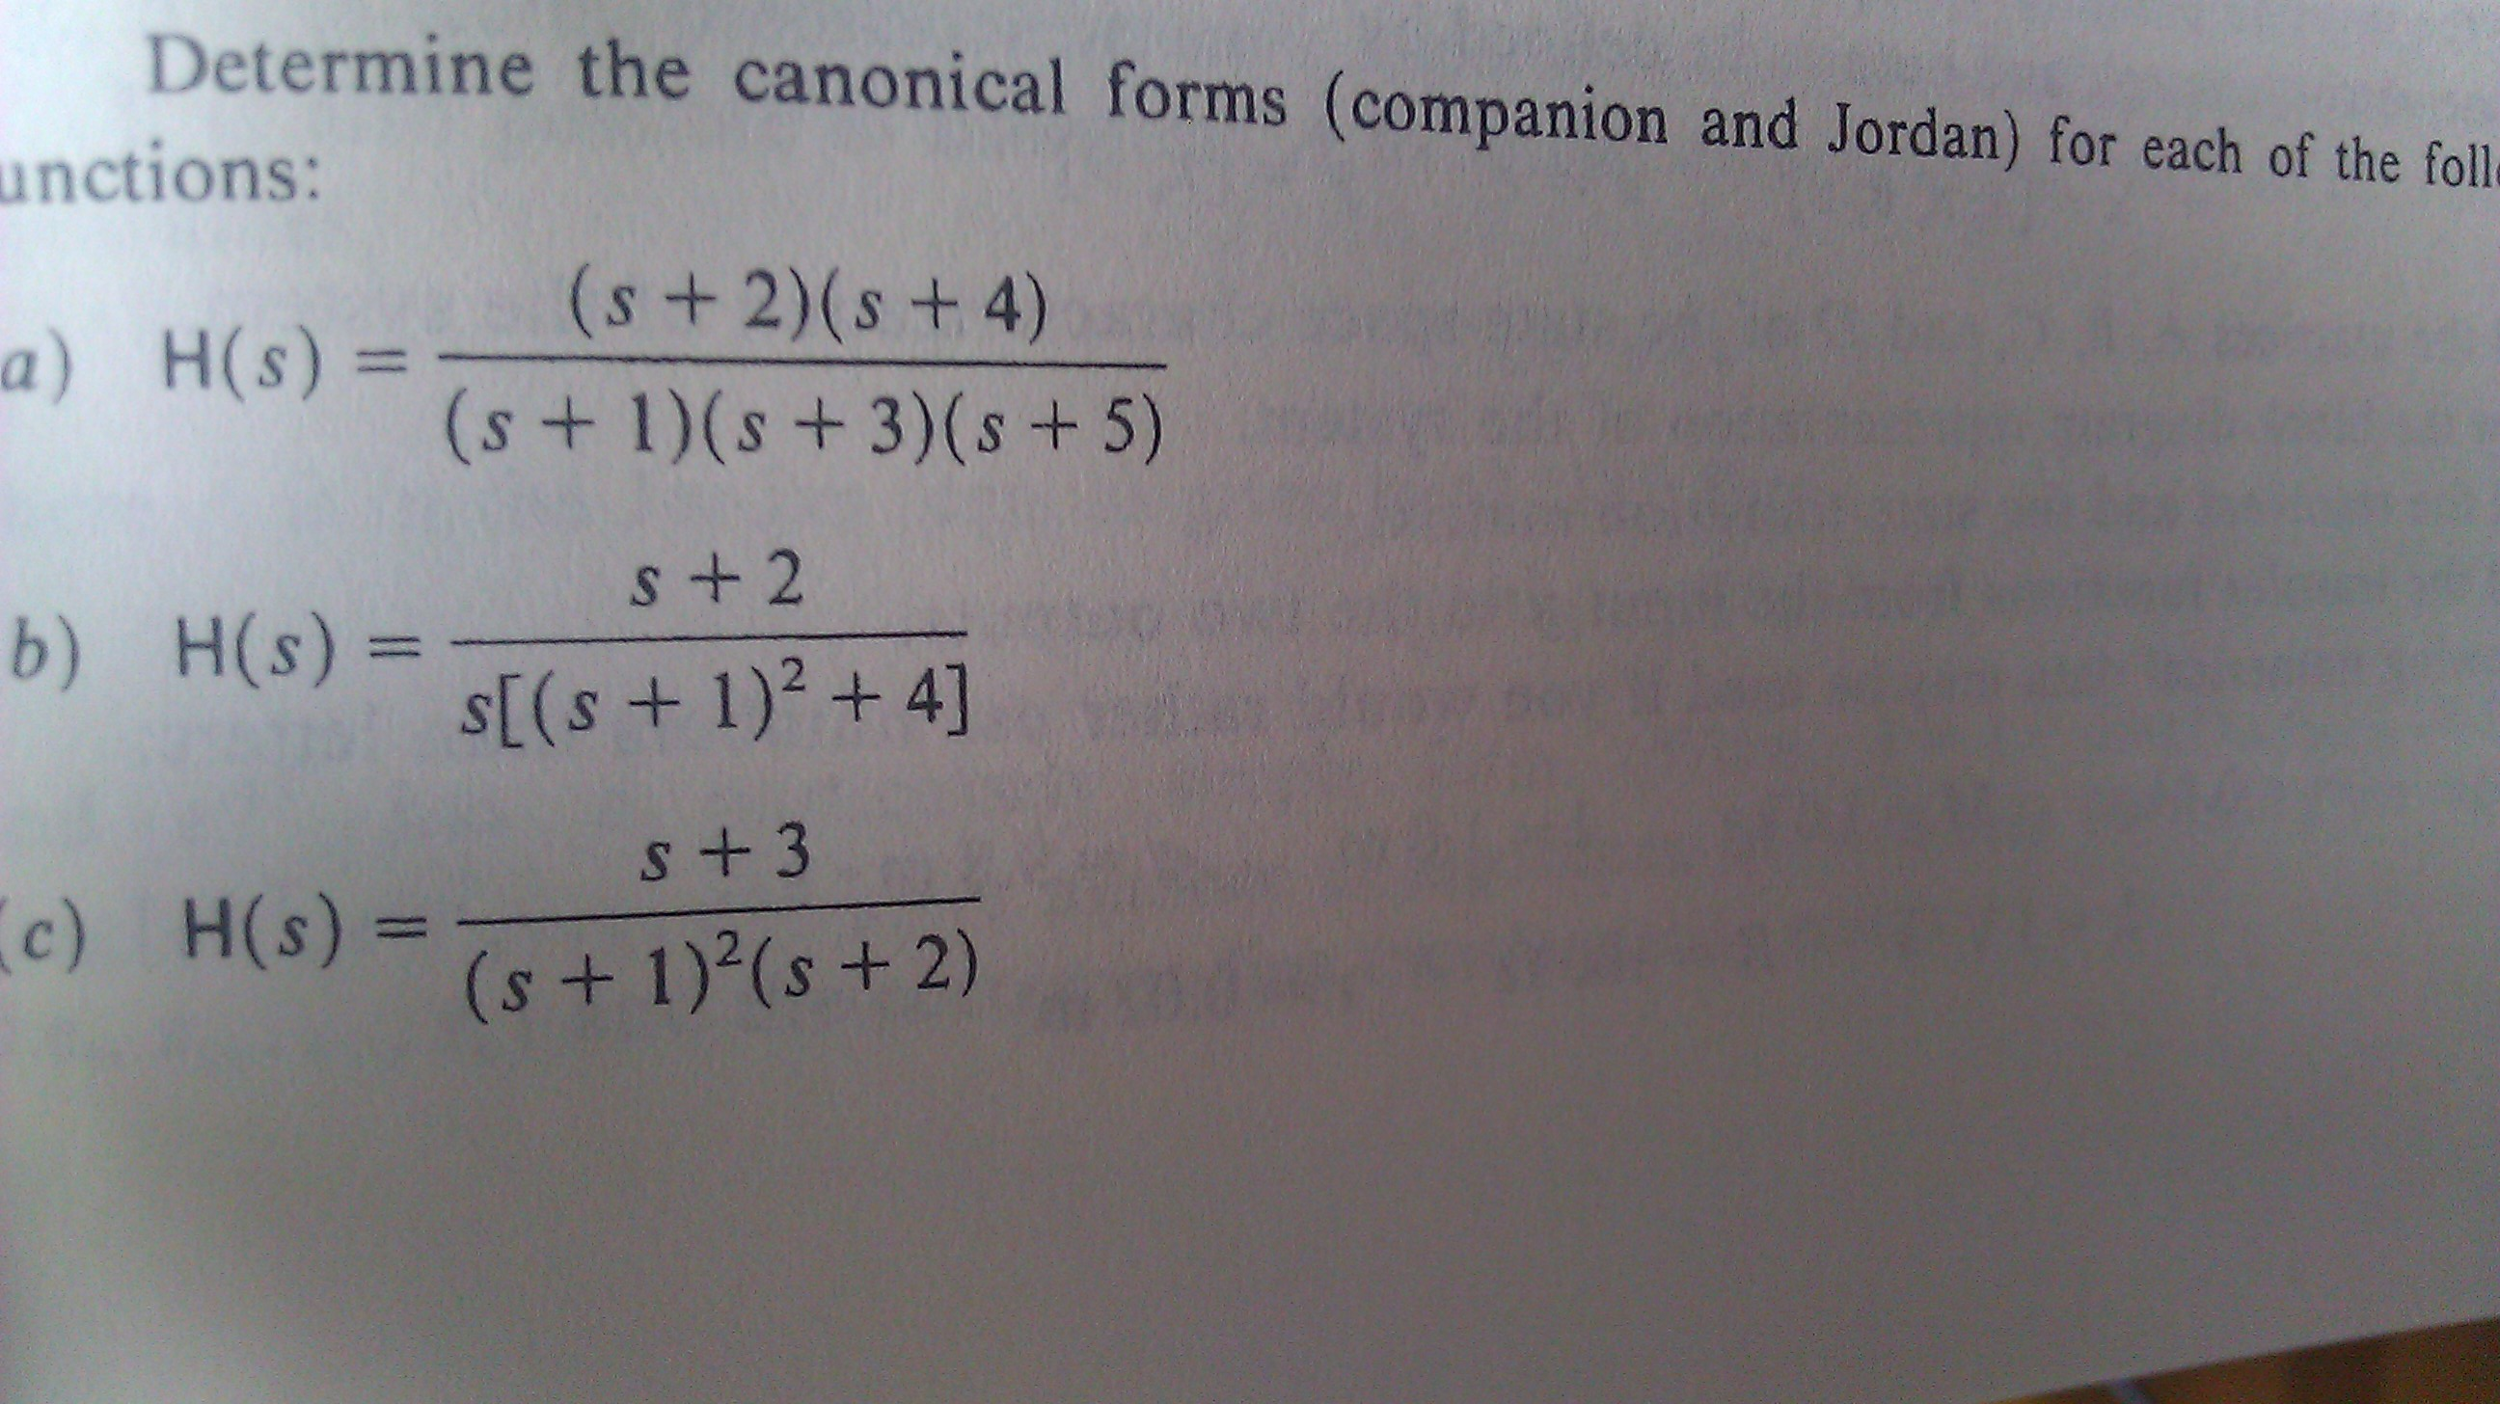 Determine the canonical forms (companion and Jorda